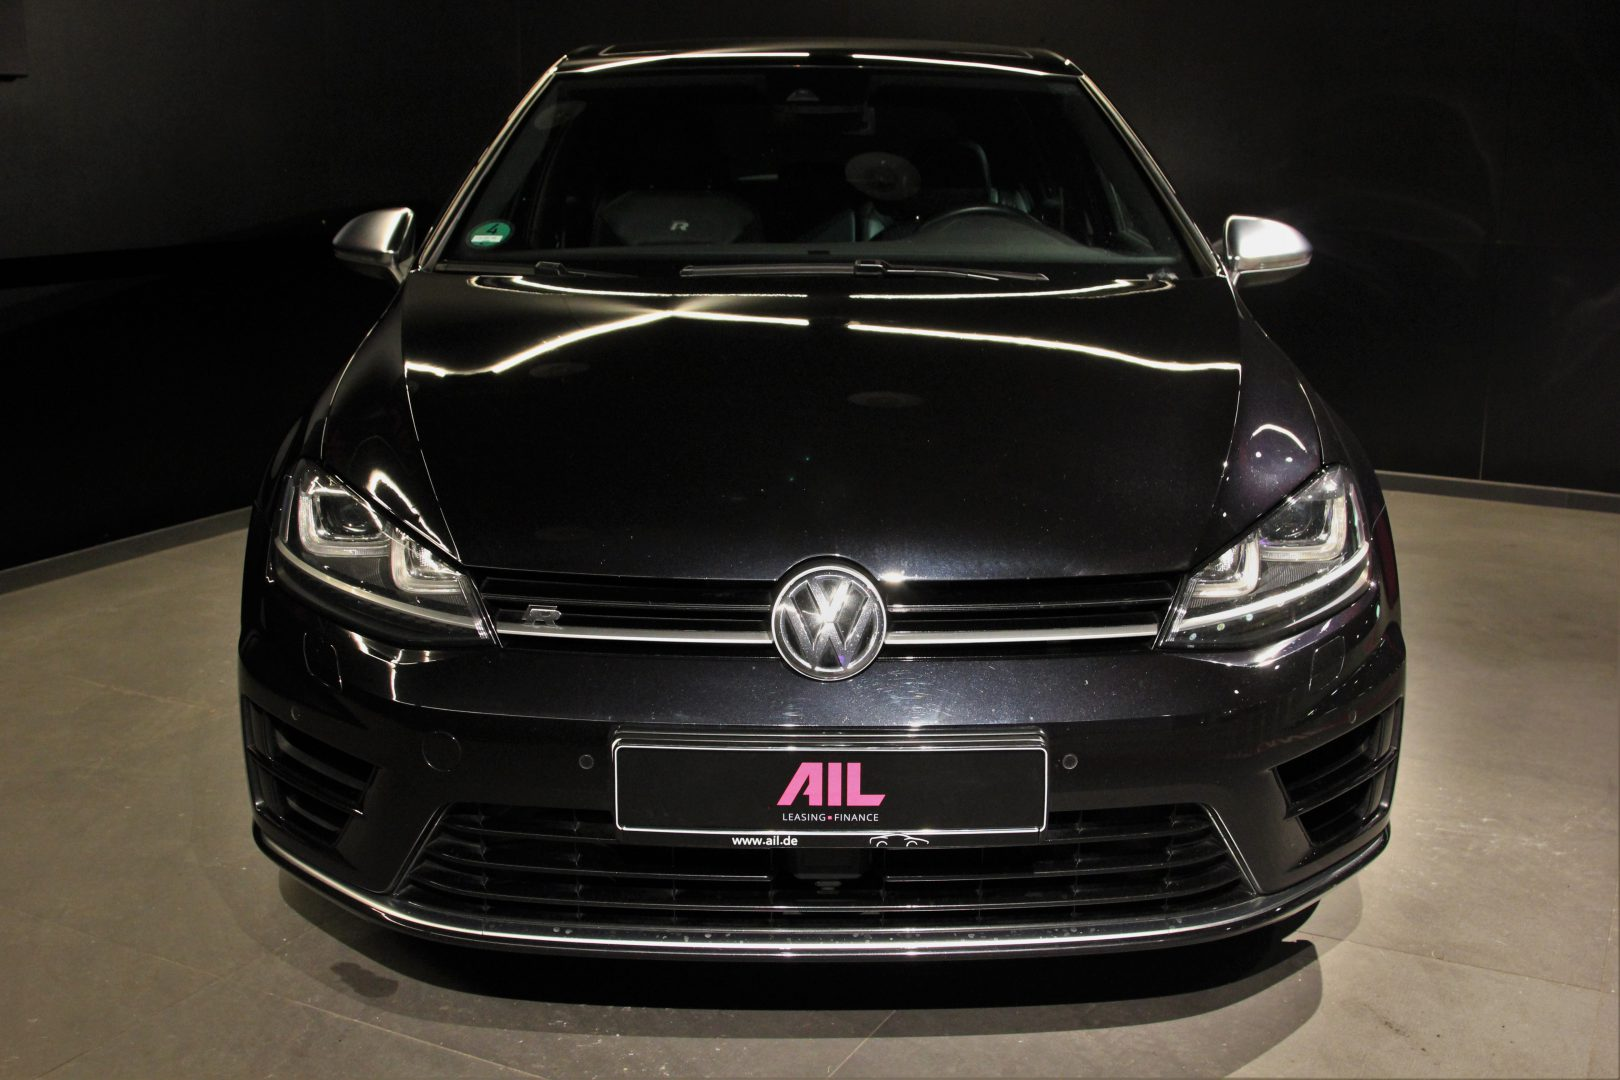 AIL VW Golf VII R 4Motion BMT 5